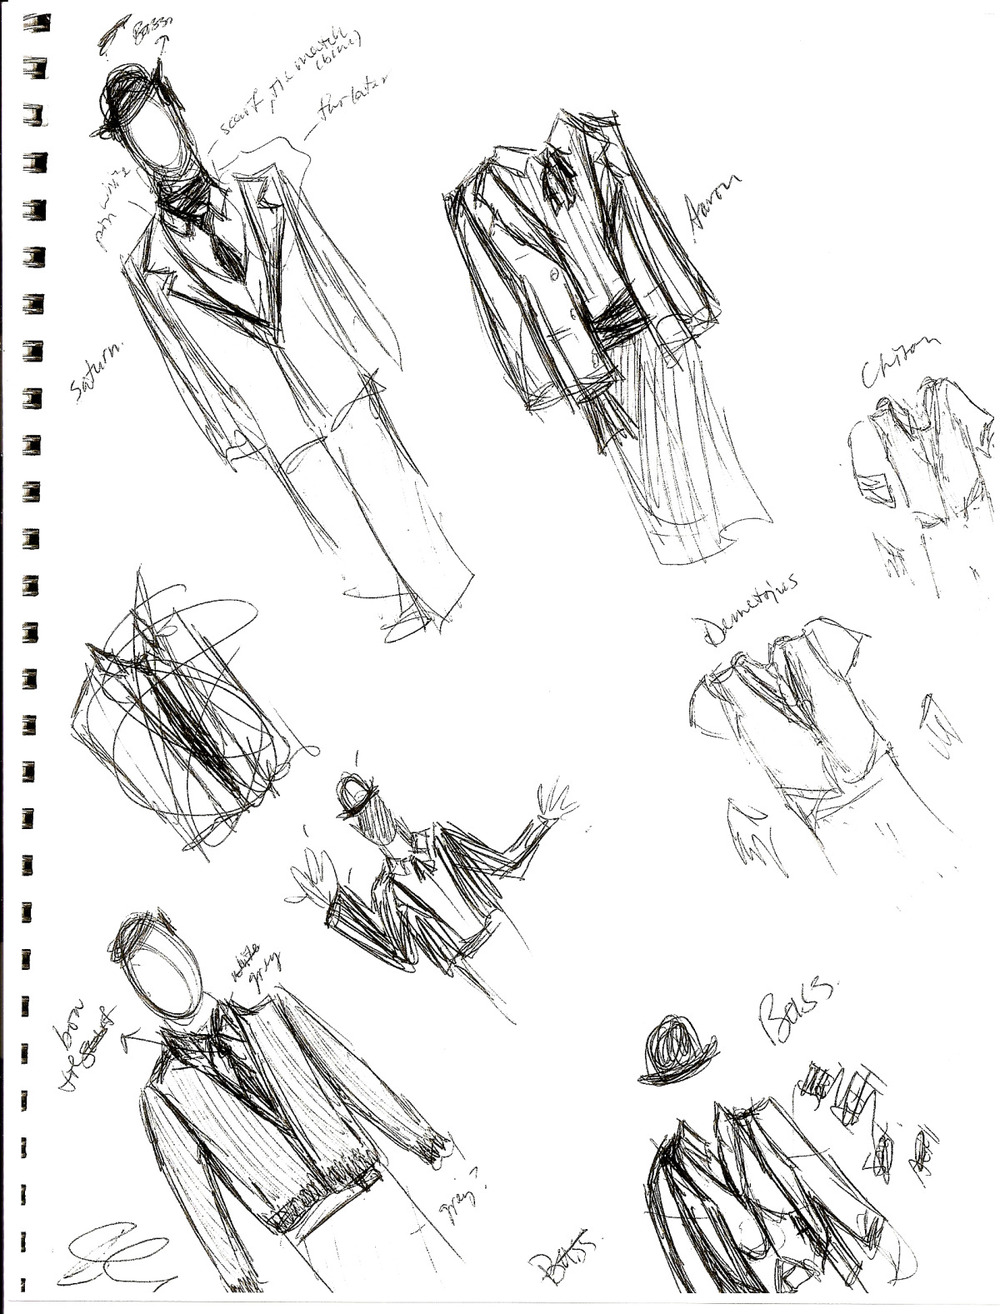 Costume Design Studies, Andronicus, 2006